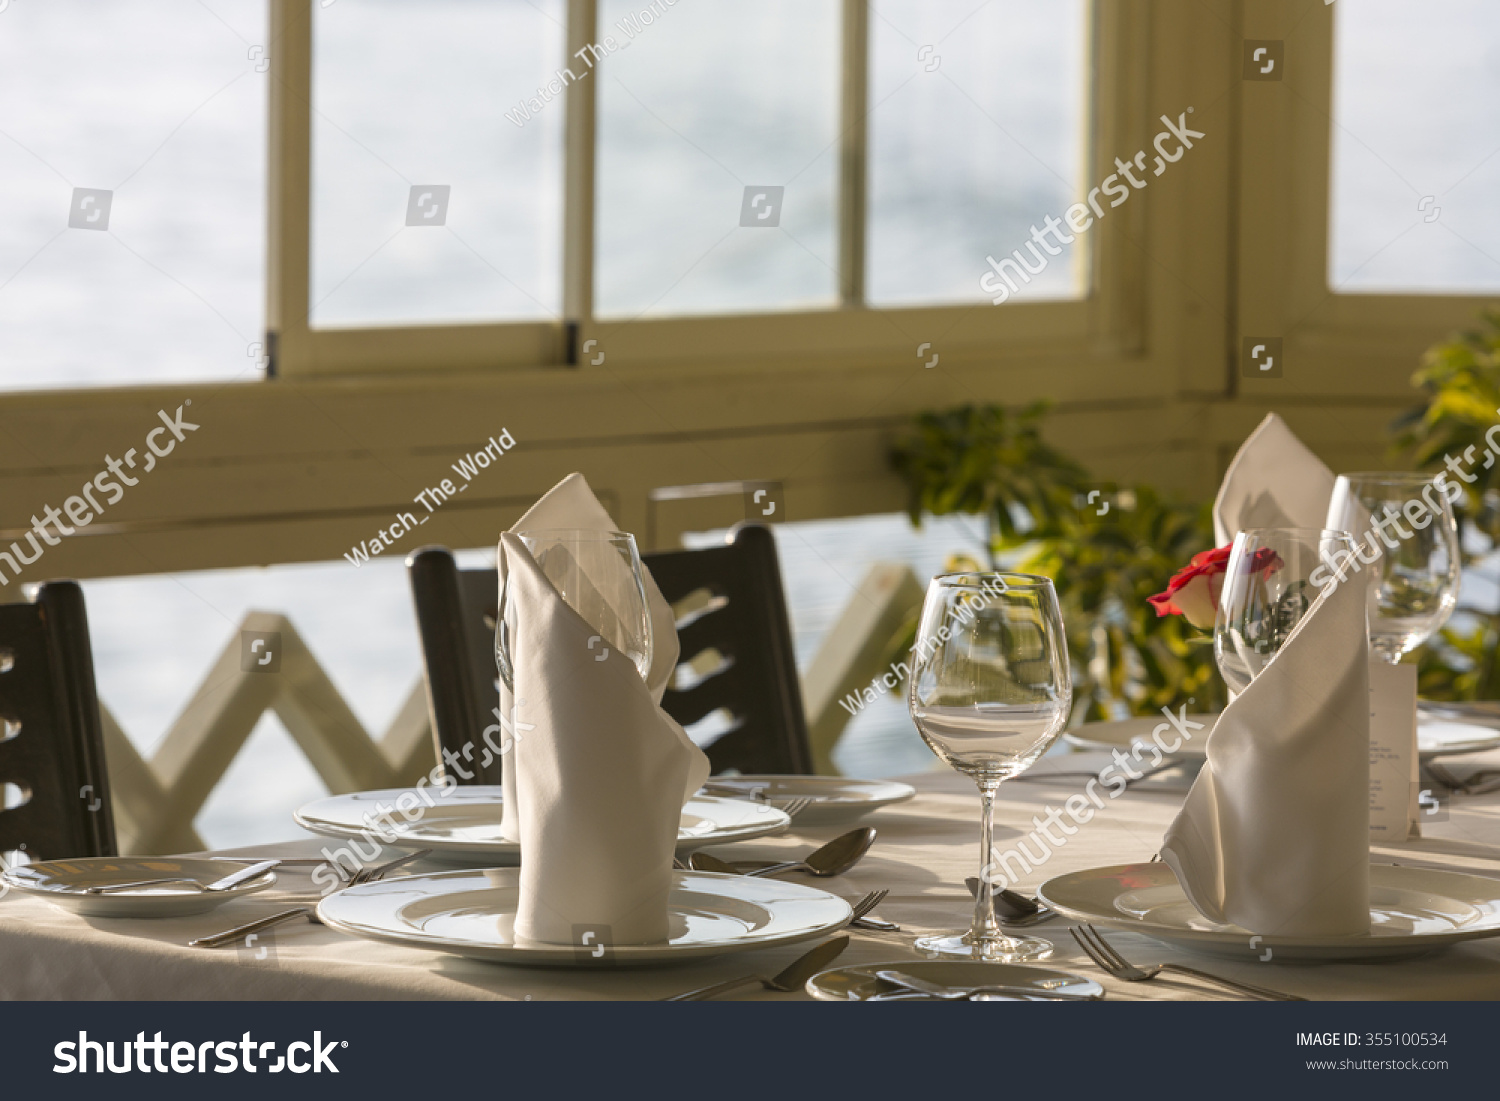 Cuisine Table Haute Table Arrangement Expensive Haute Cuisine Restaurant Stock Photo